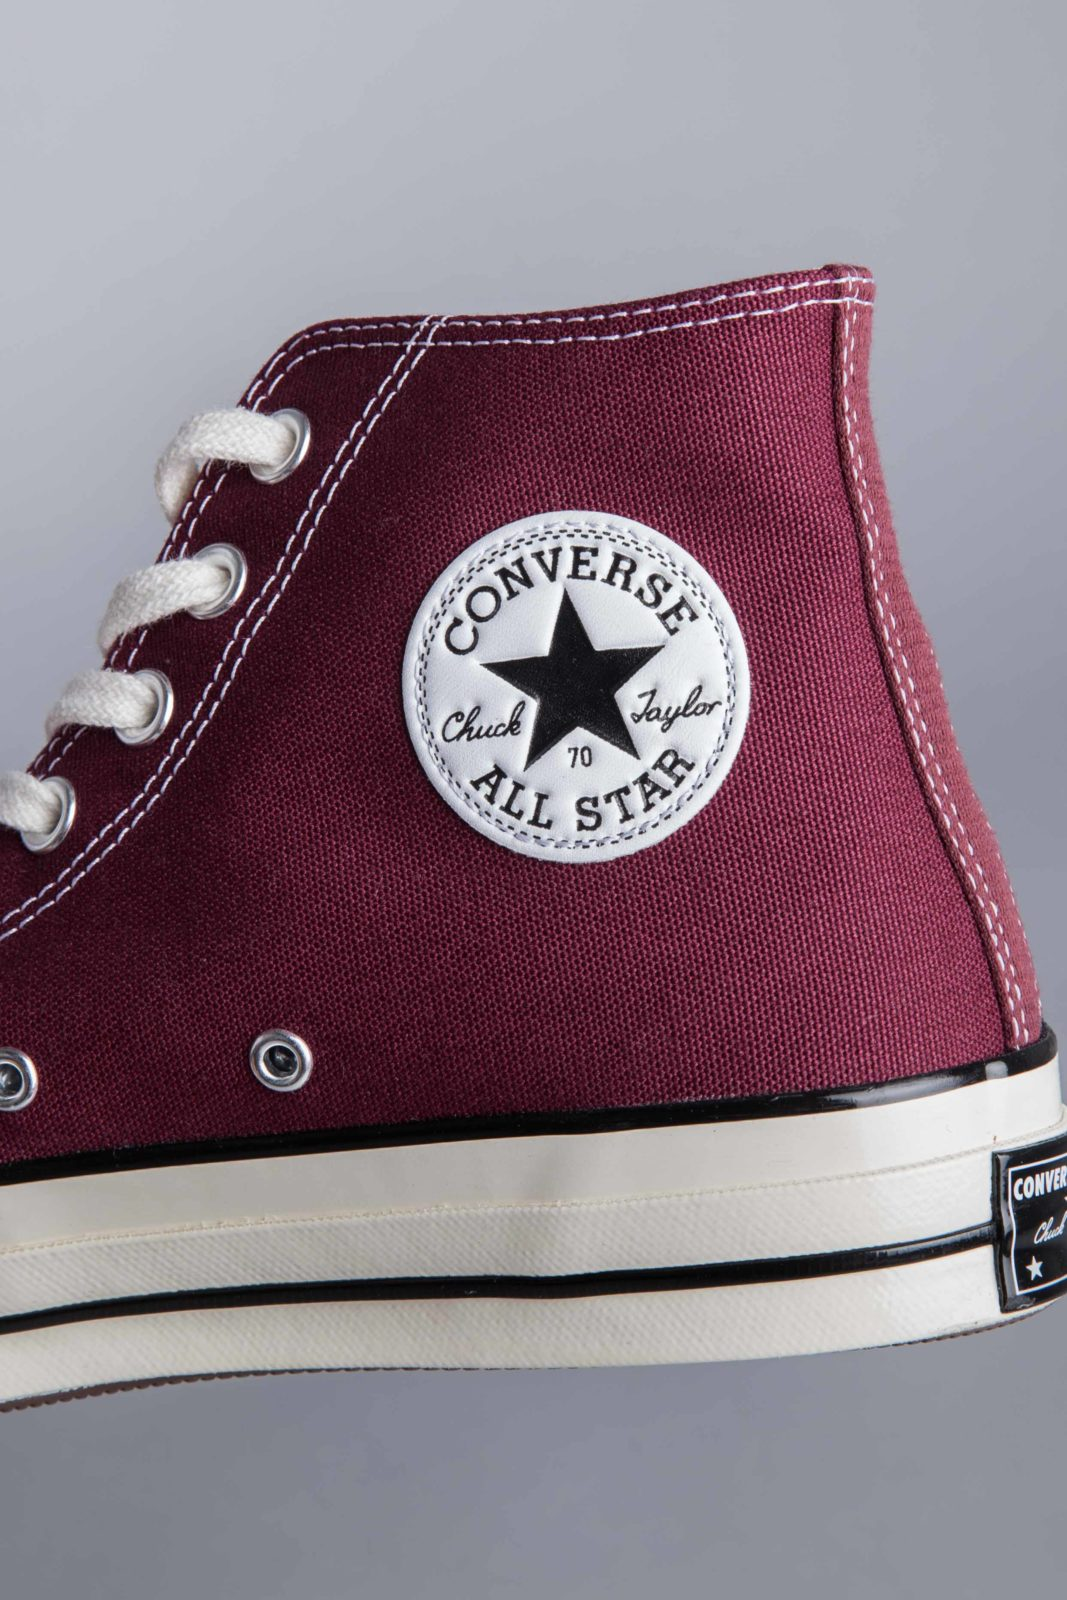 84fcec1f83bc ... Converse Chuck Taylor 70 Burgundy all star 70s  Converse ...